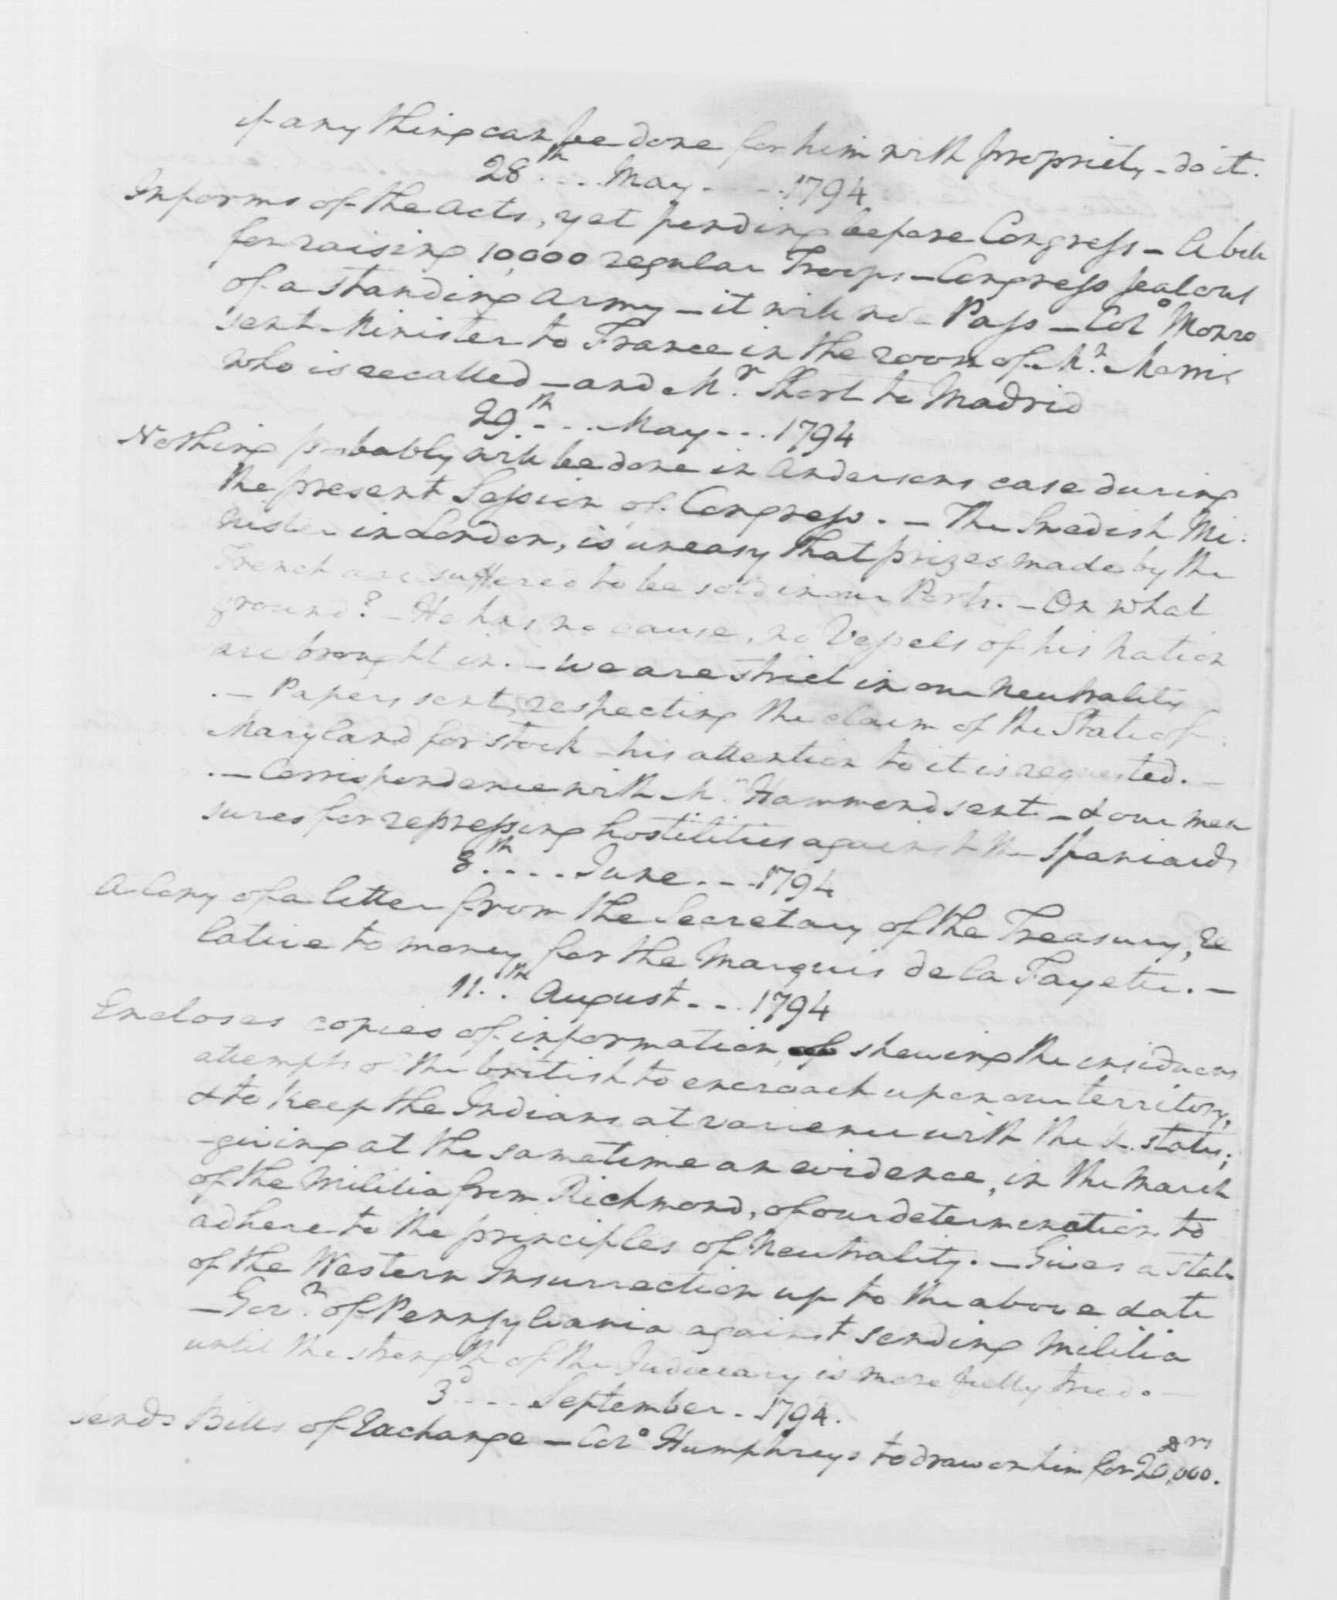 """George Washington Papers, Series 4, General Correspondence: George Washington to Thomas Pinckney, September 1795, """"Report of the letters which have been written to Maj. Pinckney since his Mission to G. B."""" (Great Britain)"""